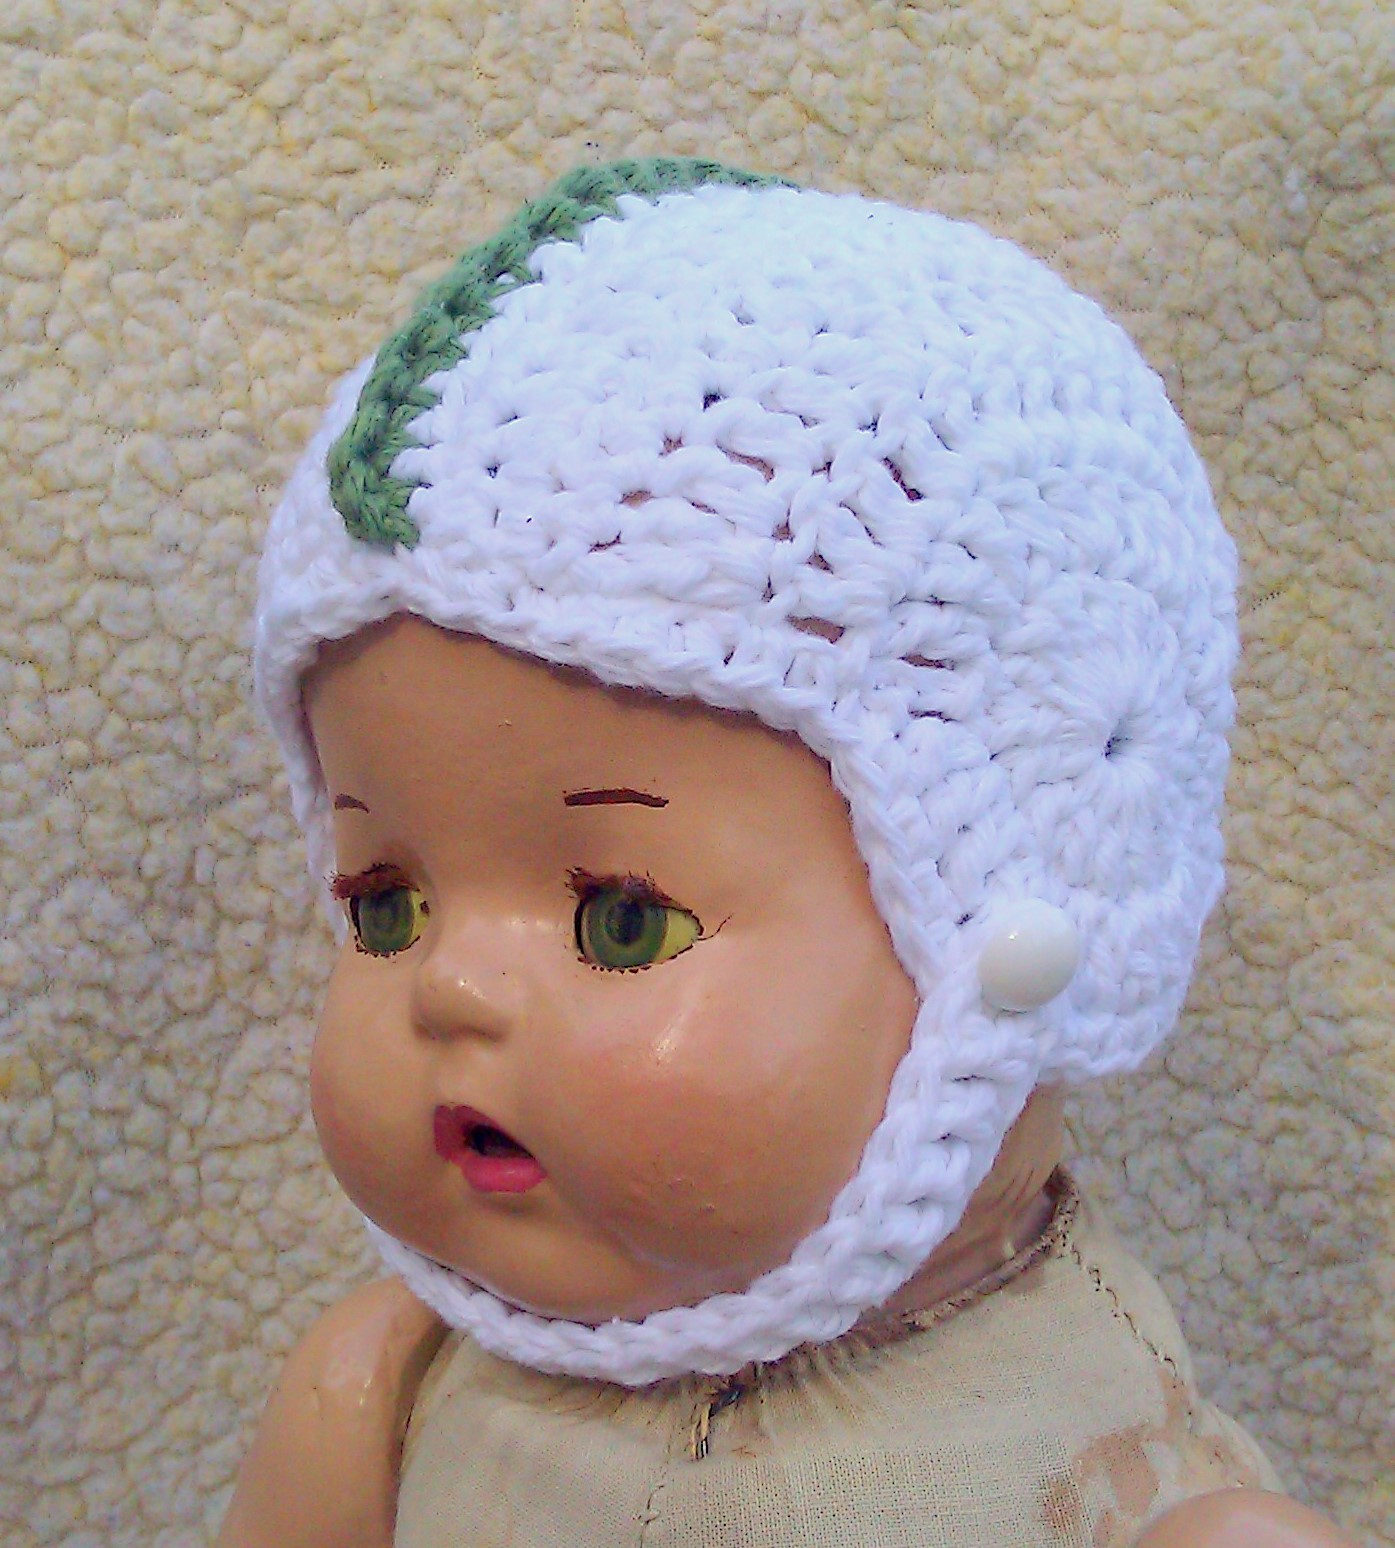 Breezybot free pattern baby crochet football helmet please purchase it at httpetsylisting96601978pdf pattern crochet football helmet 0 6m please do not reproduce or sell my patterns bankloansurffo Choice Image